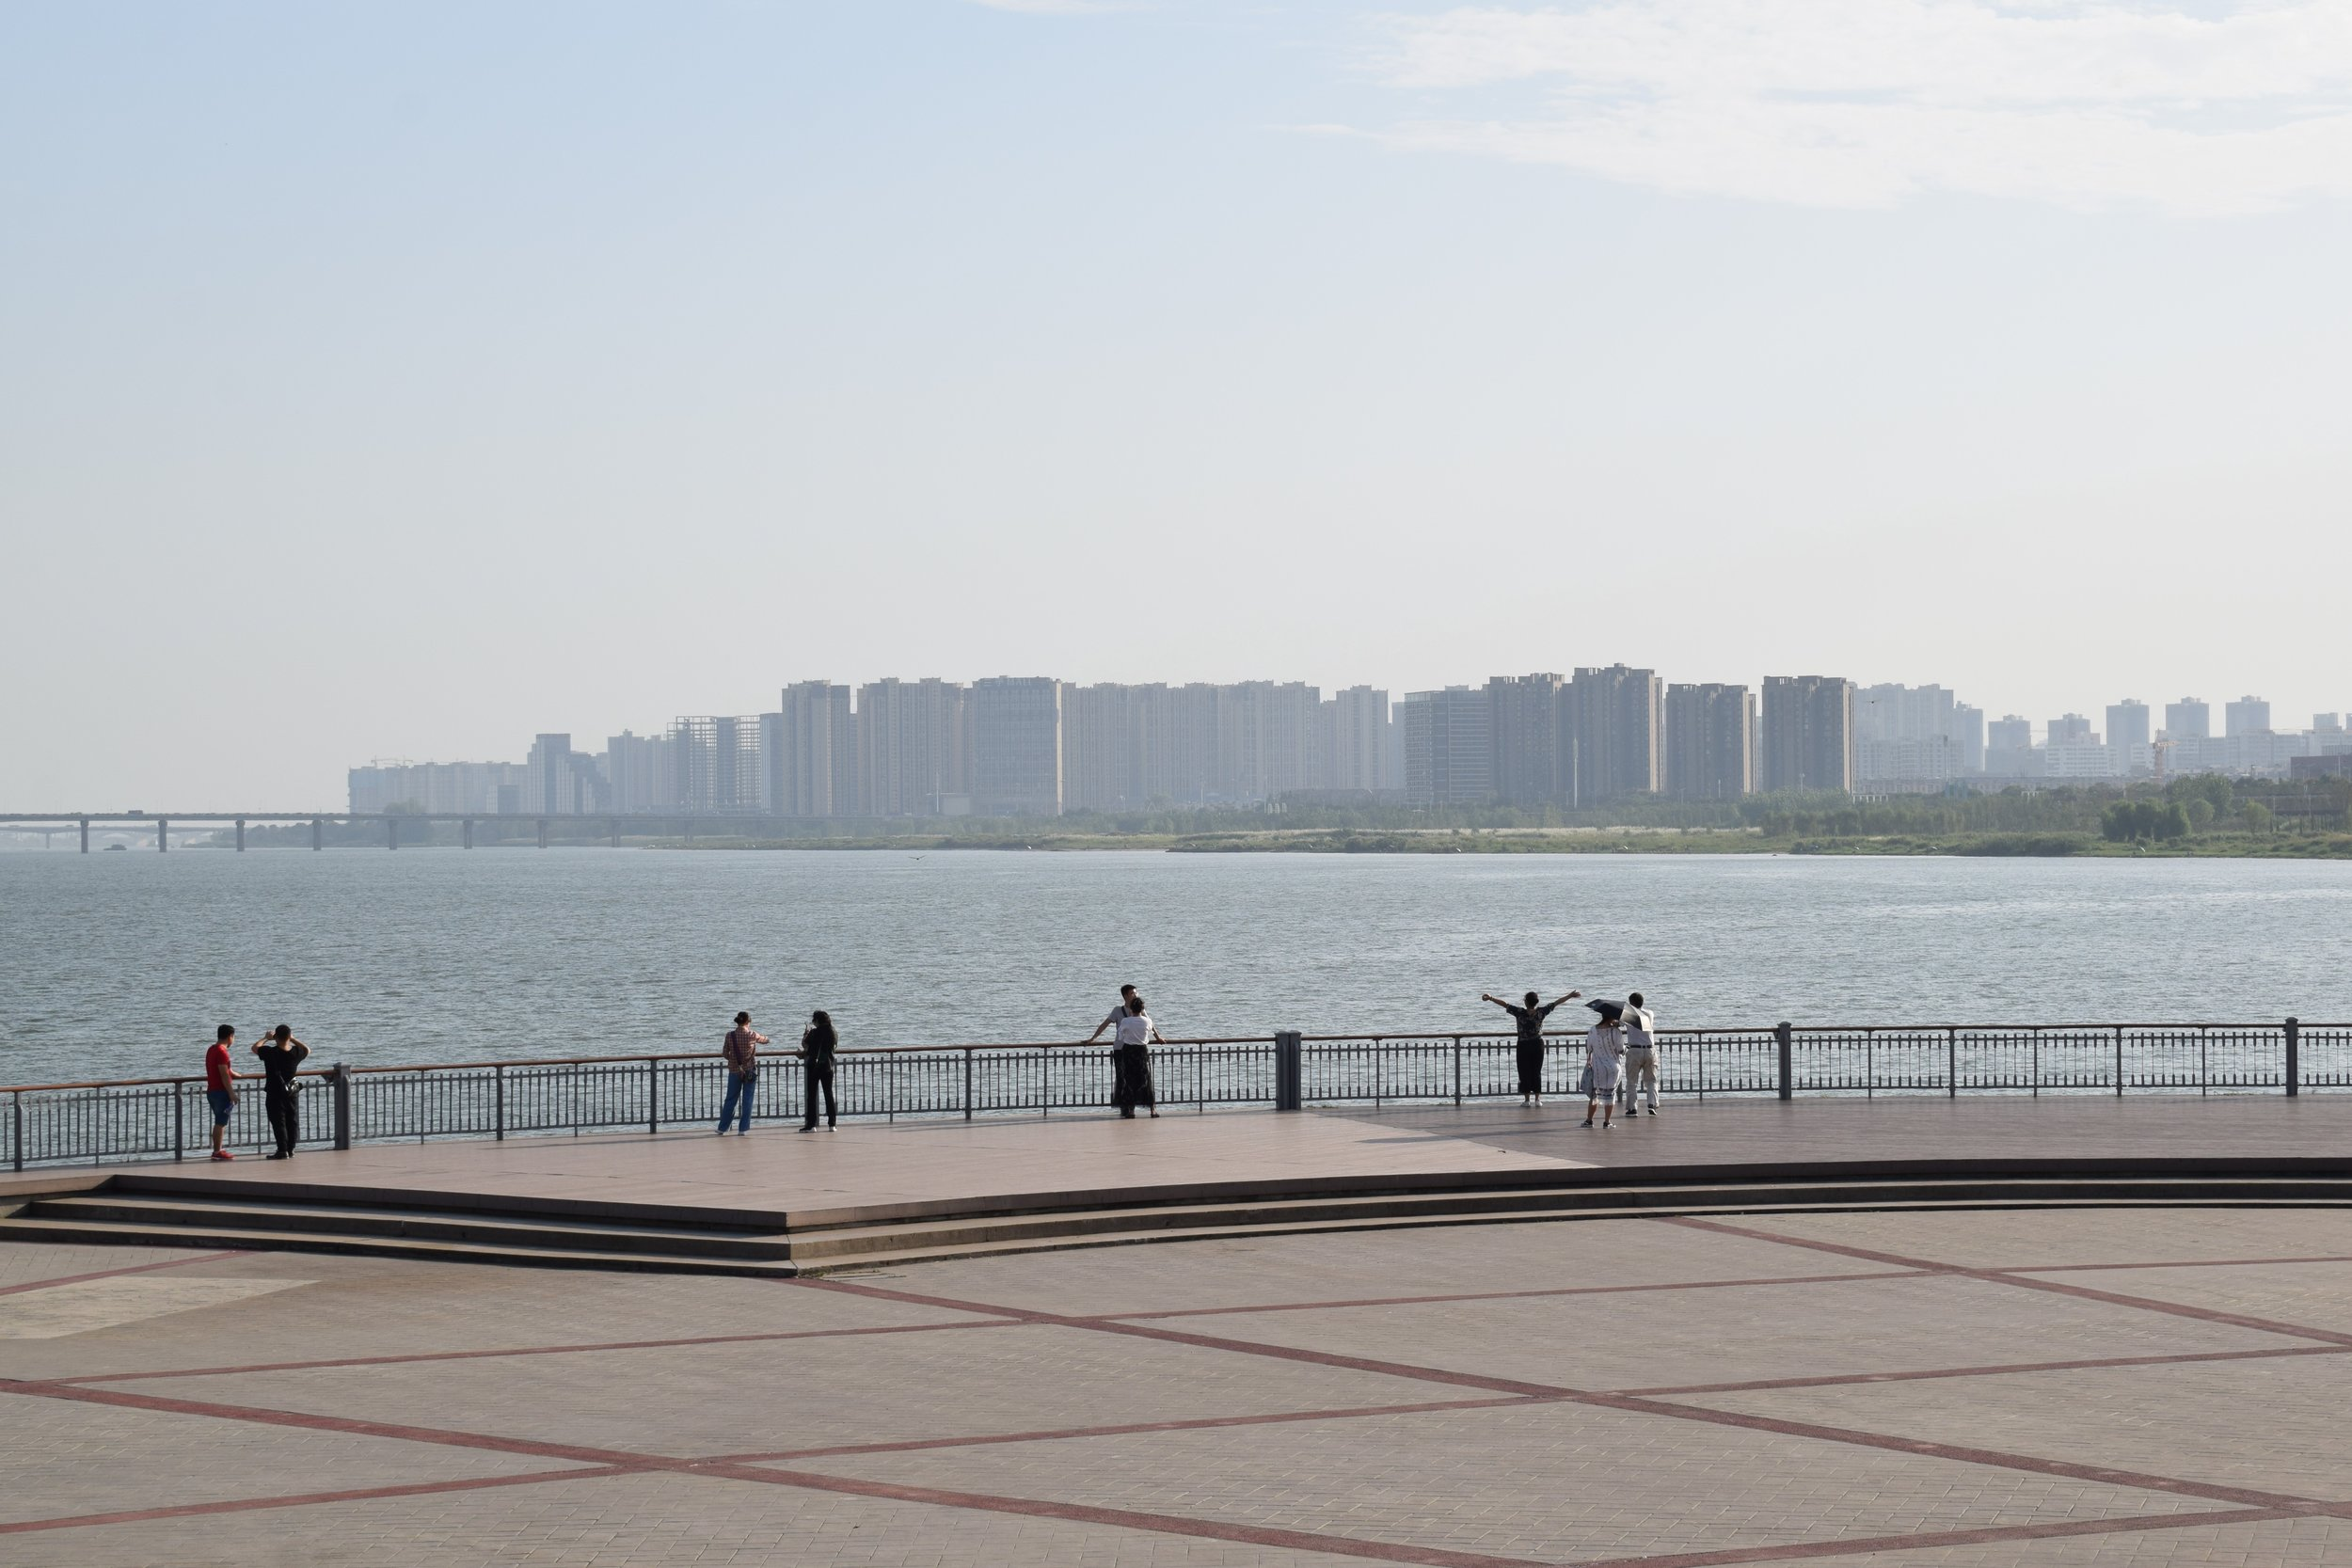 Orange Isle City Park - Admission: Free.Nearest metro: Juzizhou.Orange Isle city park sits in the middle of the Xiang River and draws most visitors in for the history and links to Mao, found in the form of a granite statue. With views of Yuelu Mountain, walking tracks right along the river, weeping willows and temples, the trip makes for a perfect way to spend the afternoon. You can walk the circuit for free or purchase a 元20 hop-on-hop-off bus ticket to stop at each main viewing point – this makes for a great option on humid days. There are a few places to eat and purchase drinks on the island but bear in mind this will be more expensive than the city itself.*If you're travelling on the metro from Wuyi Square to Juzizhou (2 stops), this will cost 元2 each way. You'll be able to see how much it will cost you from any other location to Juzizhou by changing the language to English on the ticket machines. So, don't panic if you can't read Chinese. On arrival at Juzizhou, walk up the stairs and bear left to find the ticket office to purchase a hop-on-hop-off bus pass.